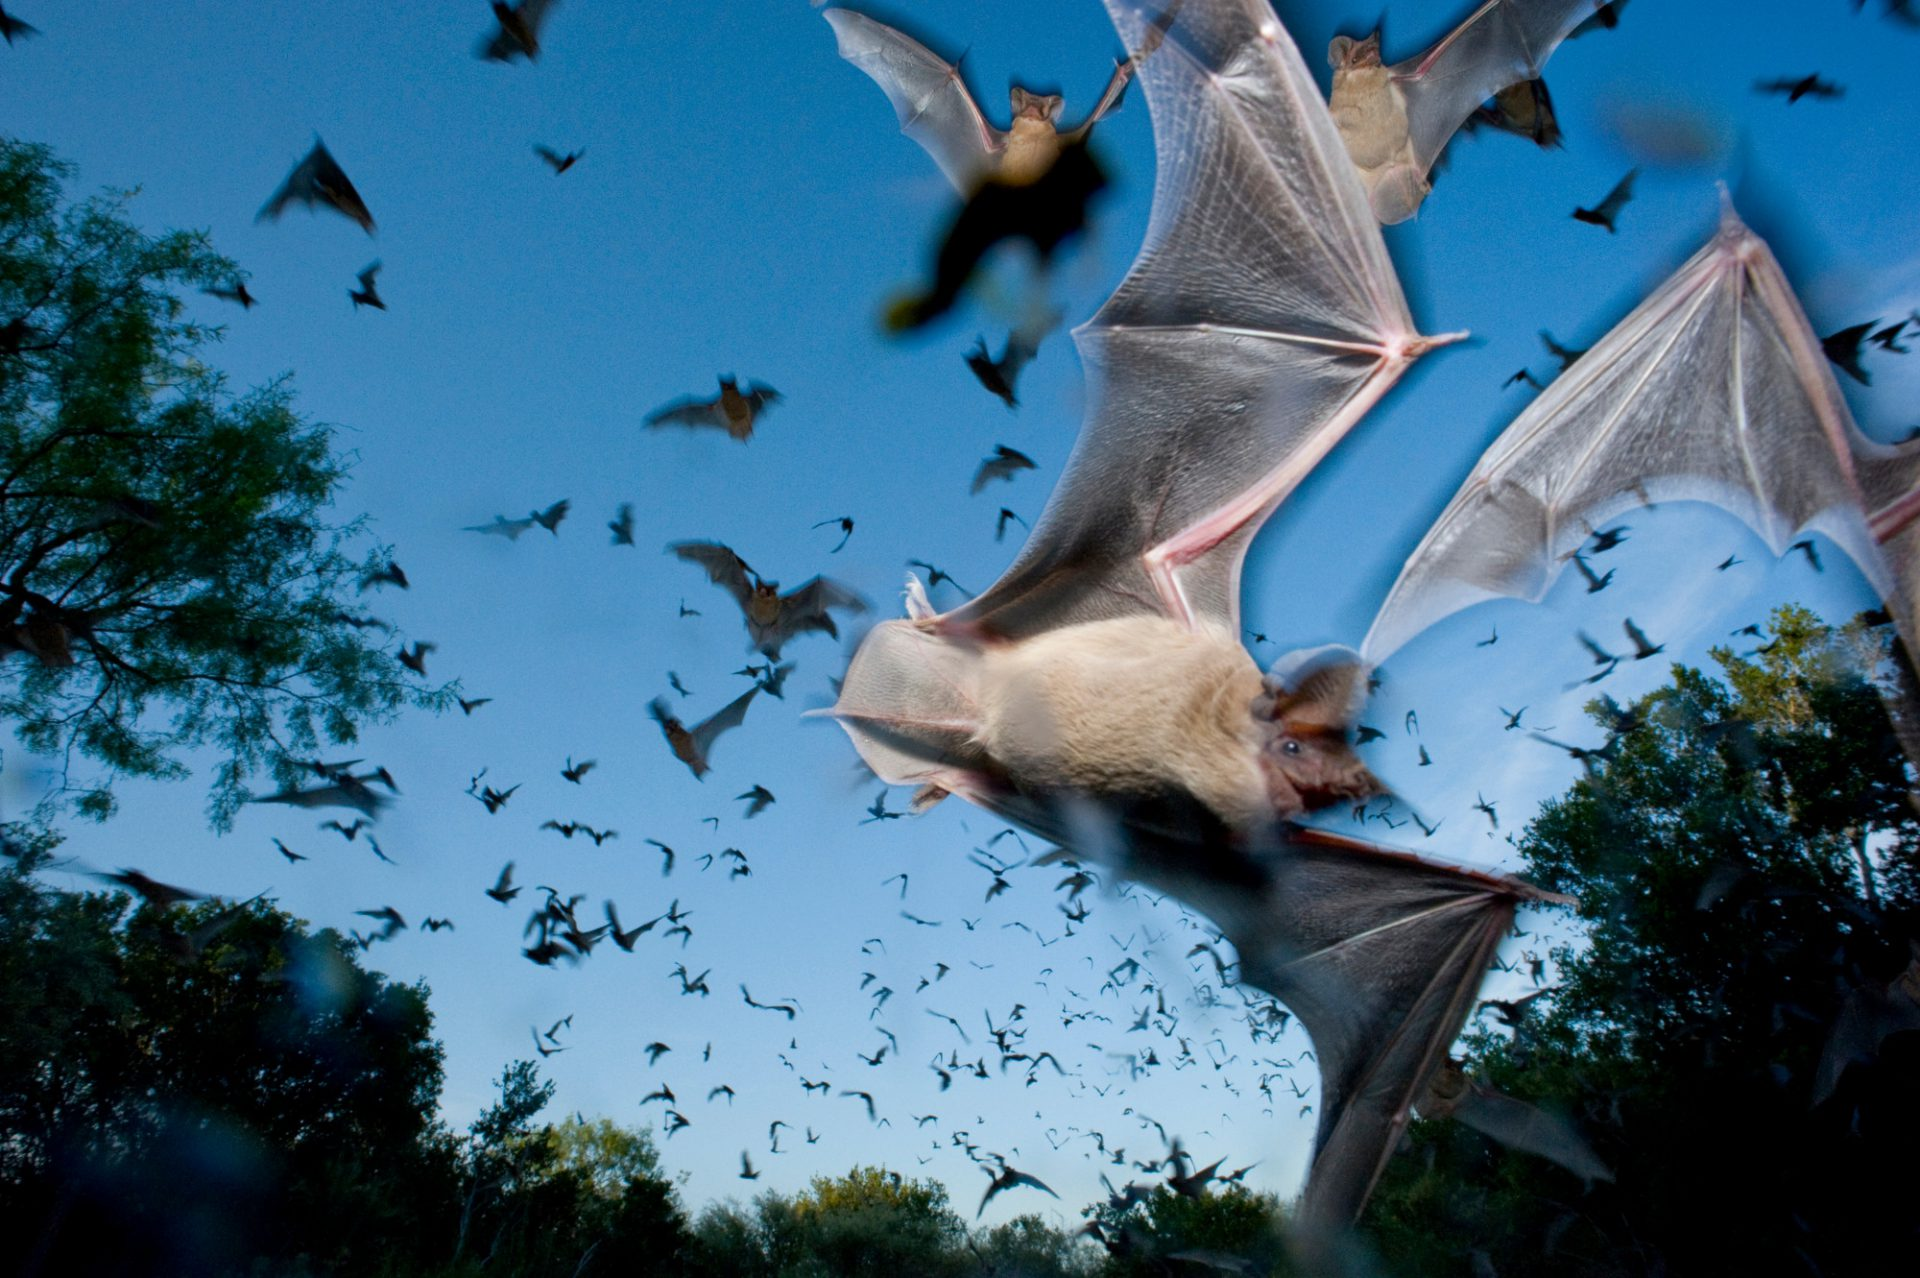 Mexican free-tailed bats (Tadarida brasiliensis) swirl out of the Eckert James River Bat Cave at sunset to feed on insects. This maternity colony builds to more than 6 million bats in late July, making it one of the largest in the world. It is owned and managed by The Nature Conservancy.